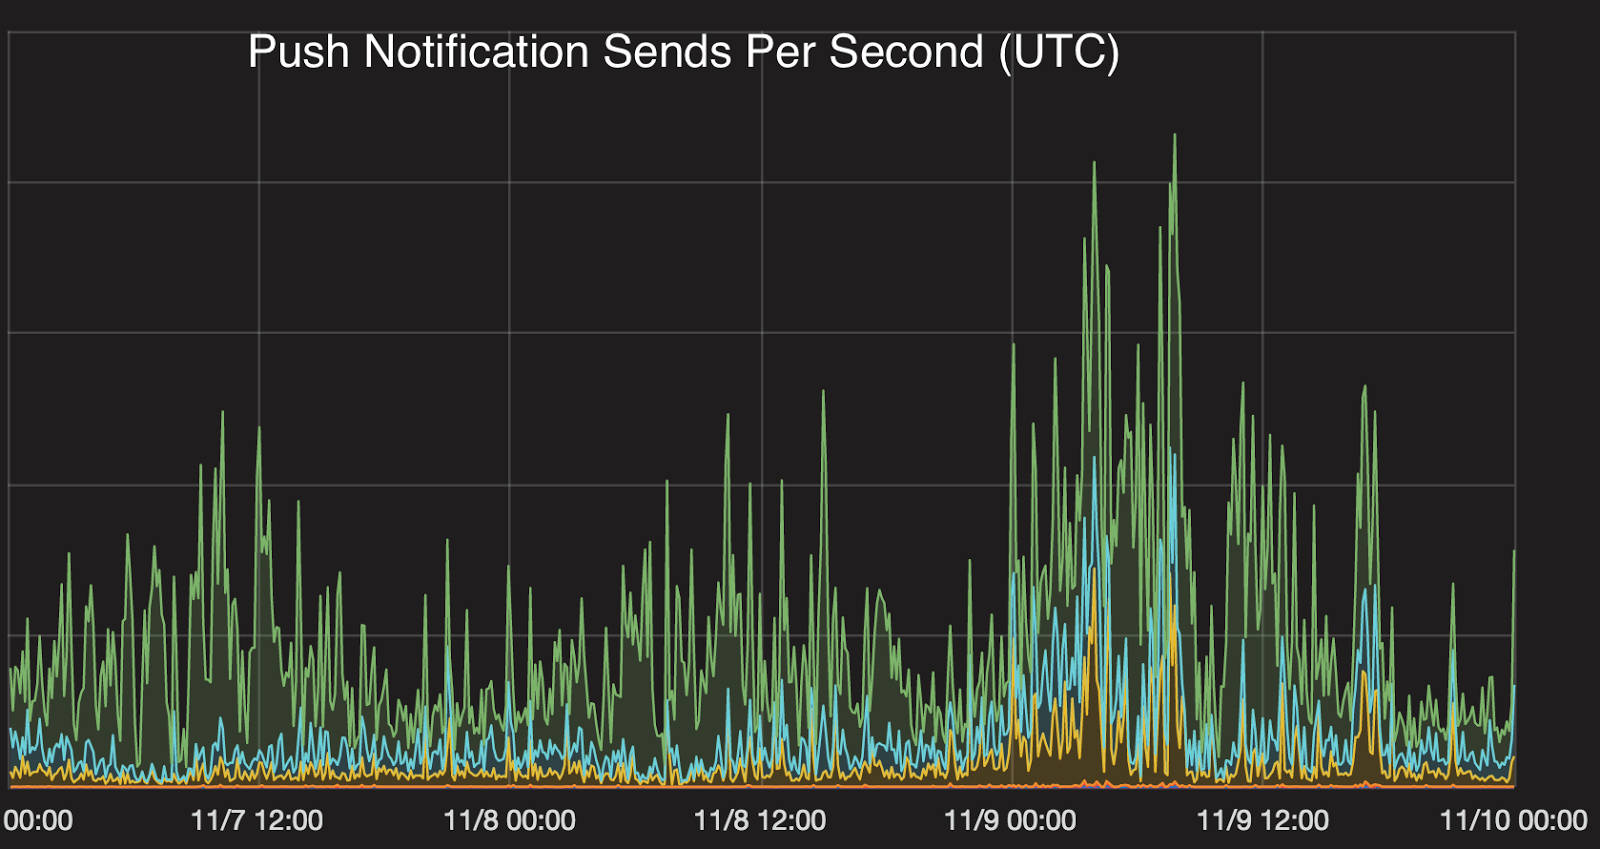 How Urban Airship Scaled To 2 5 Billion Notifications During The